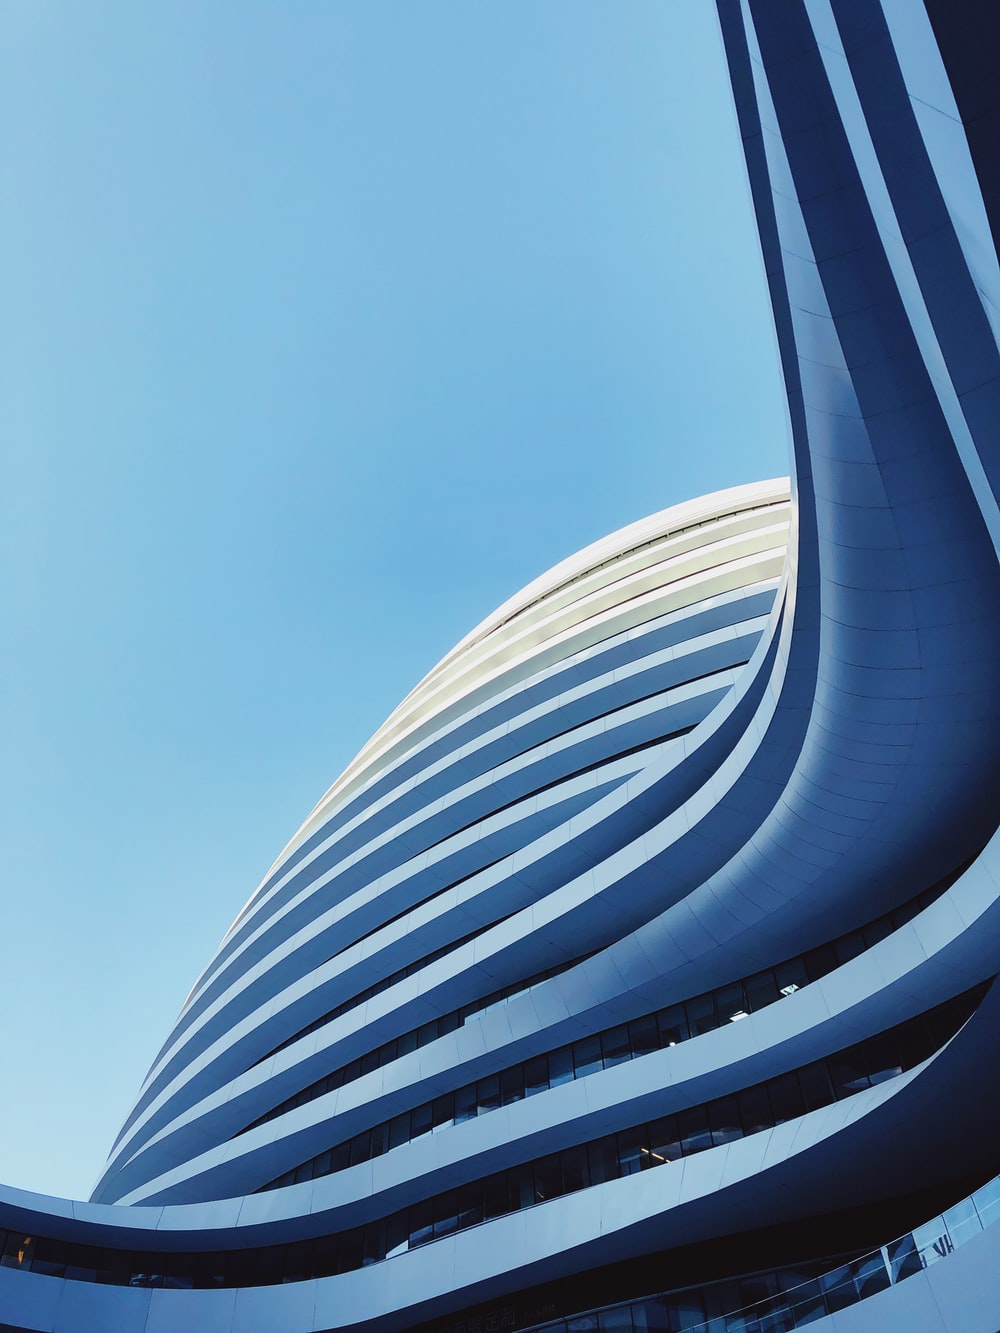 low-angle photography of state of the high-rise building under blue calm sky